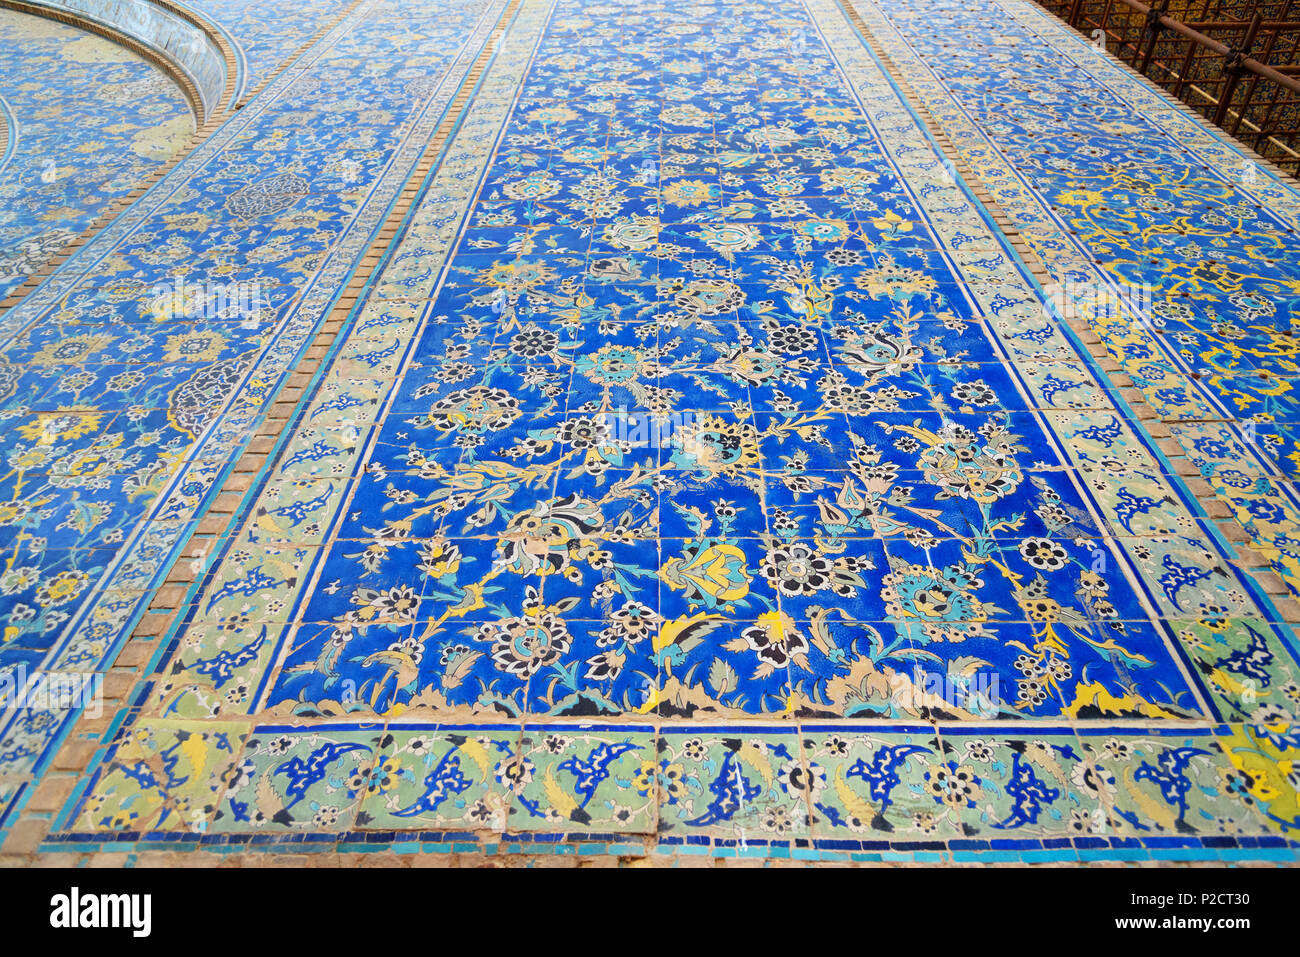 Decorated with colorful tiles in indoor yard of Shah Mosque or Imam Mosque in Isfahan. Iran - Stock Image